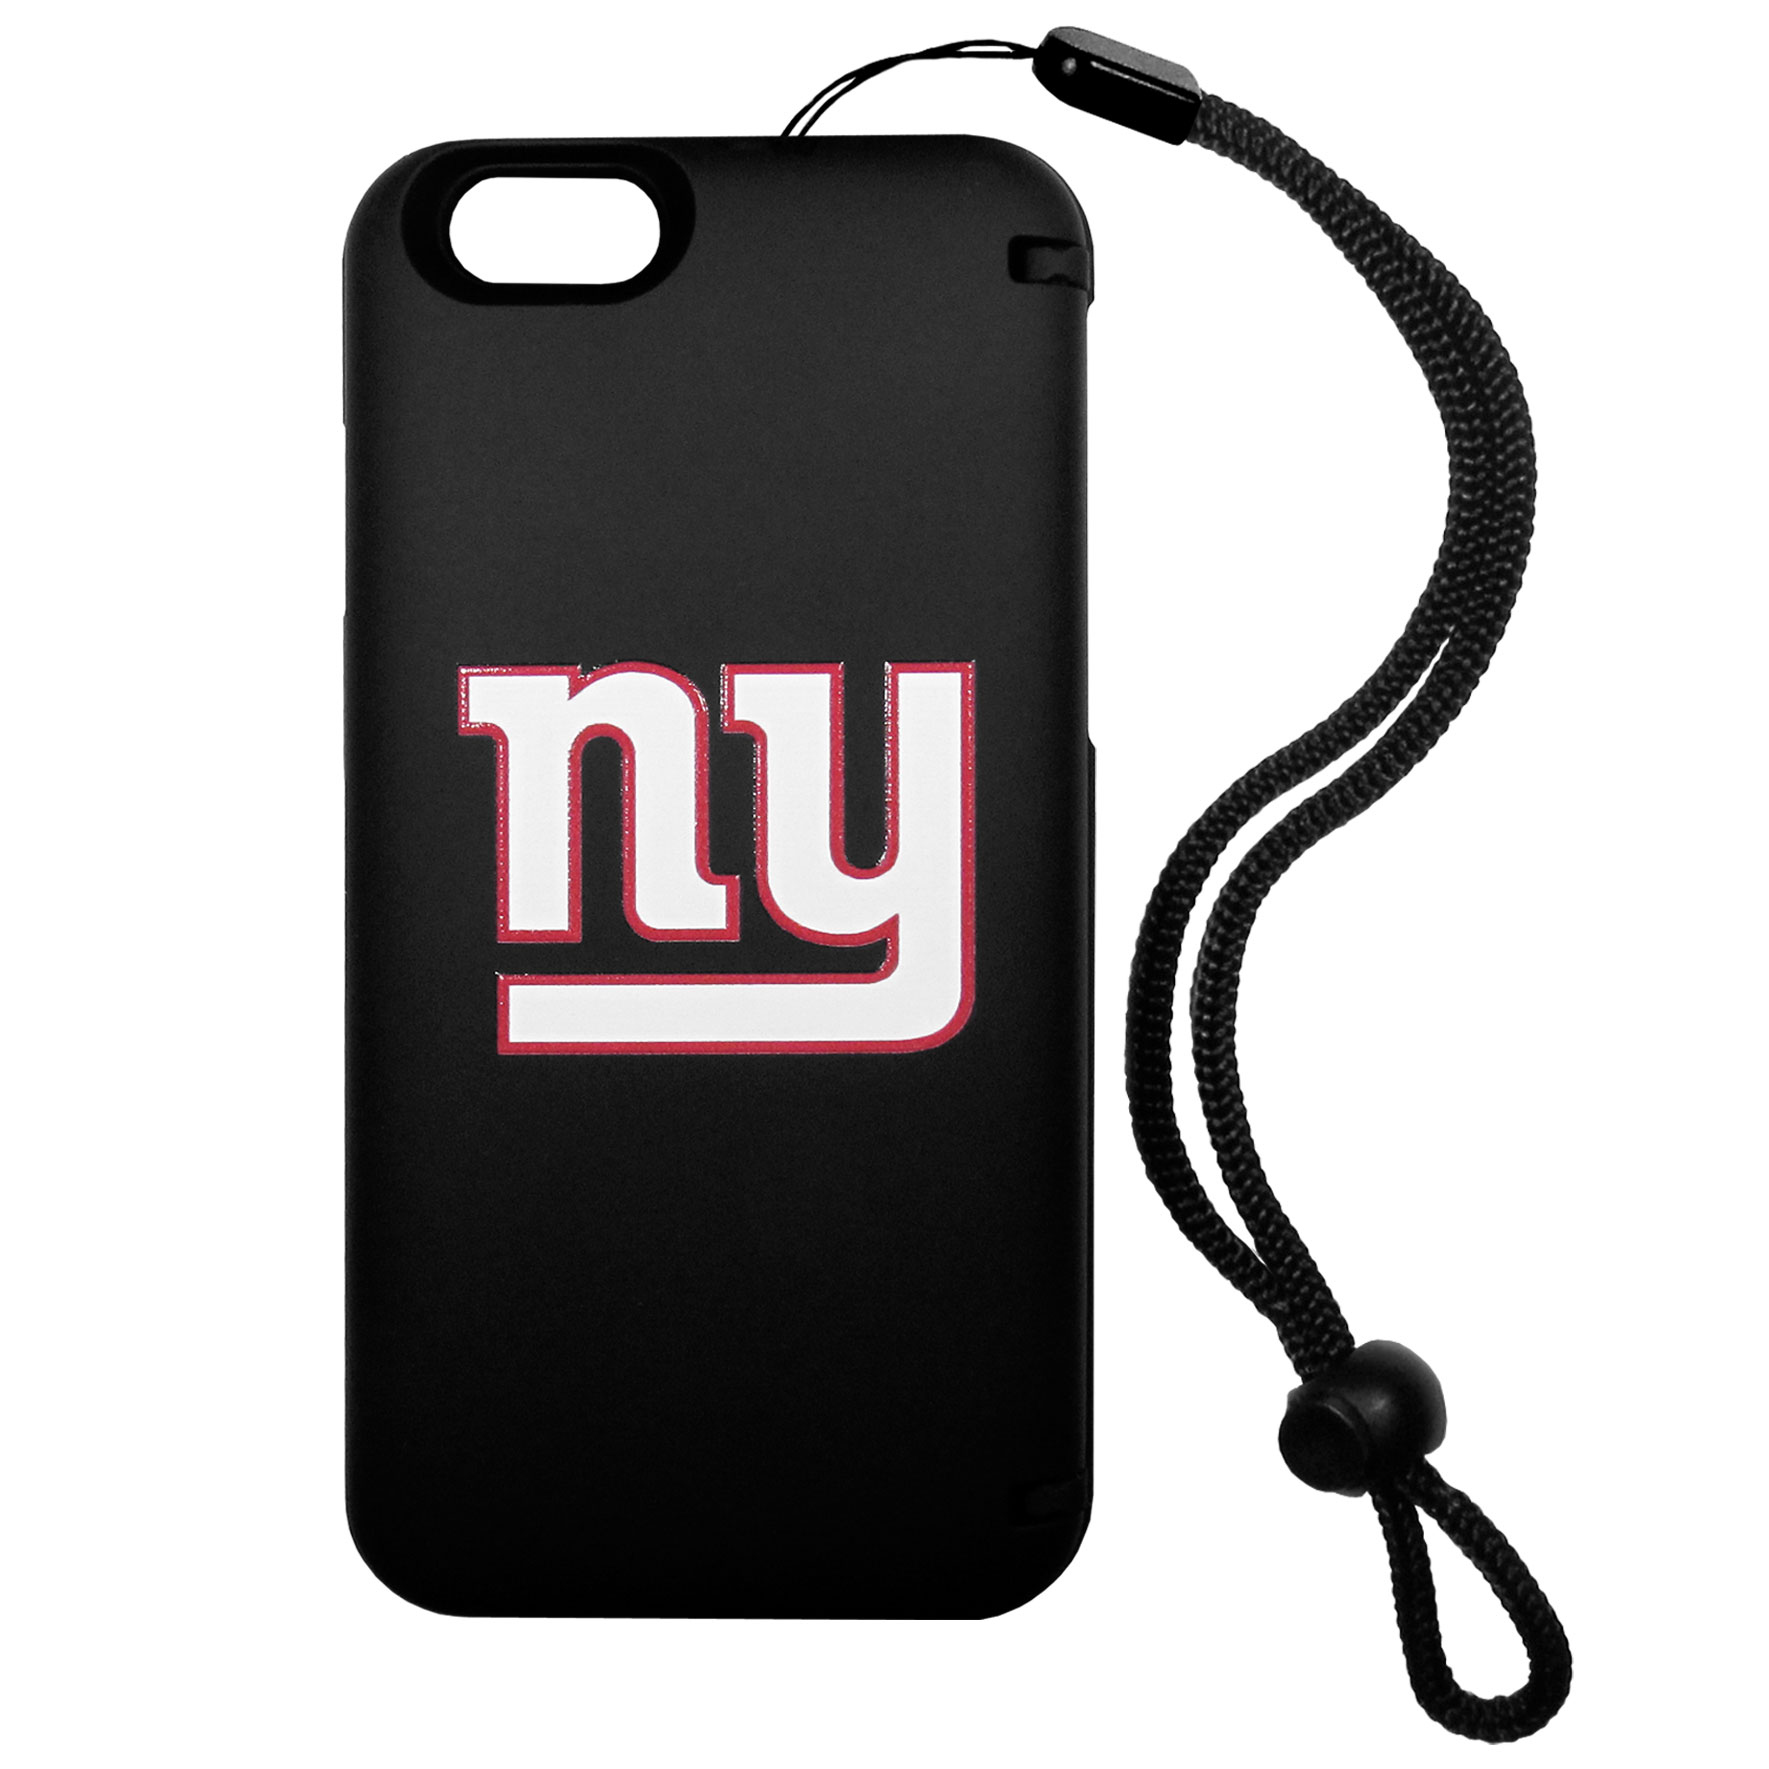 New York Giants iPhone 6 Everything Case - This case really does have everything but the kitchen sink! The hidden compartment lets you keep your cards, money and tickets to the big game safe and secure and has a compact mirror so you can make sure your game face is ready to go. It also comes with a kickstand to make chatting and watching videos a breeze. The wrist strap allows you to travel with ease with your everything case. If that's not enough, it also comes with the New York Giants logo printed in expert detail on the front.